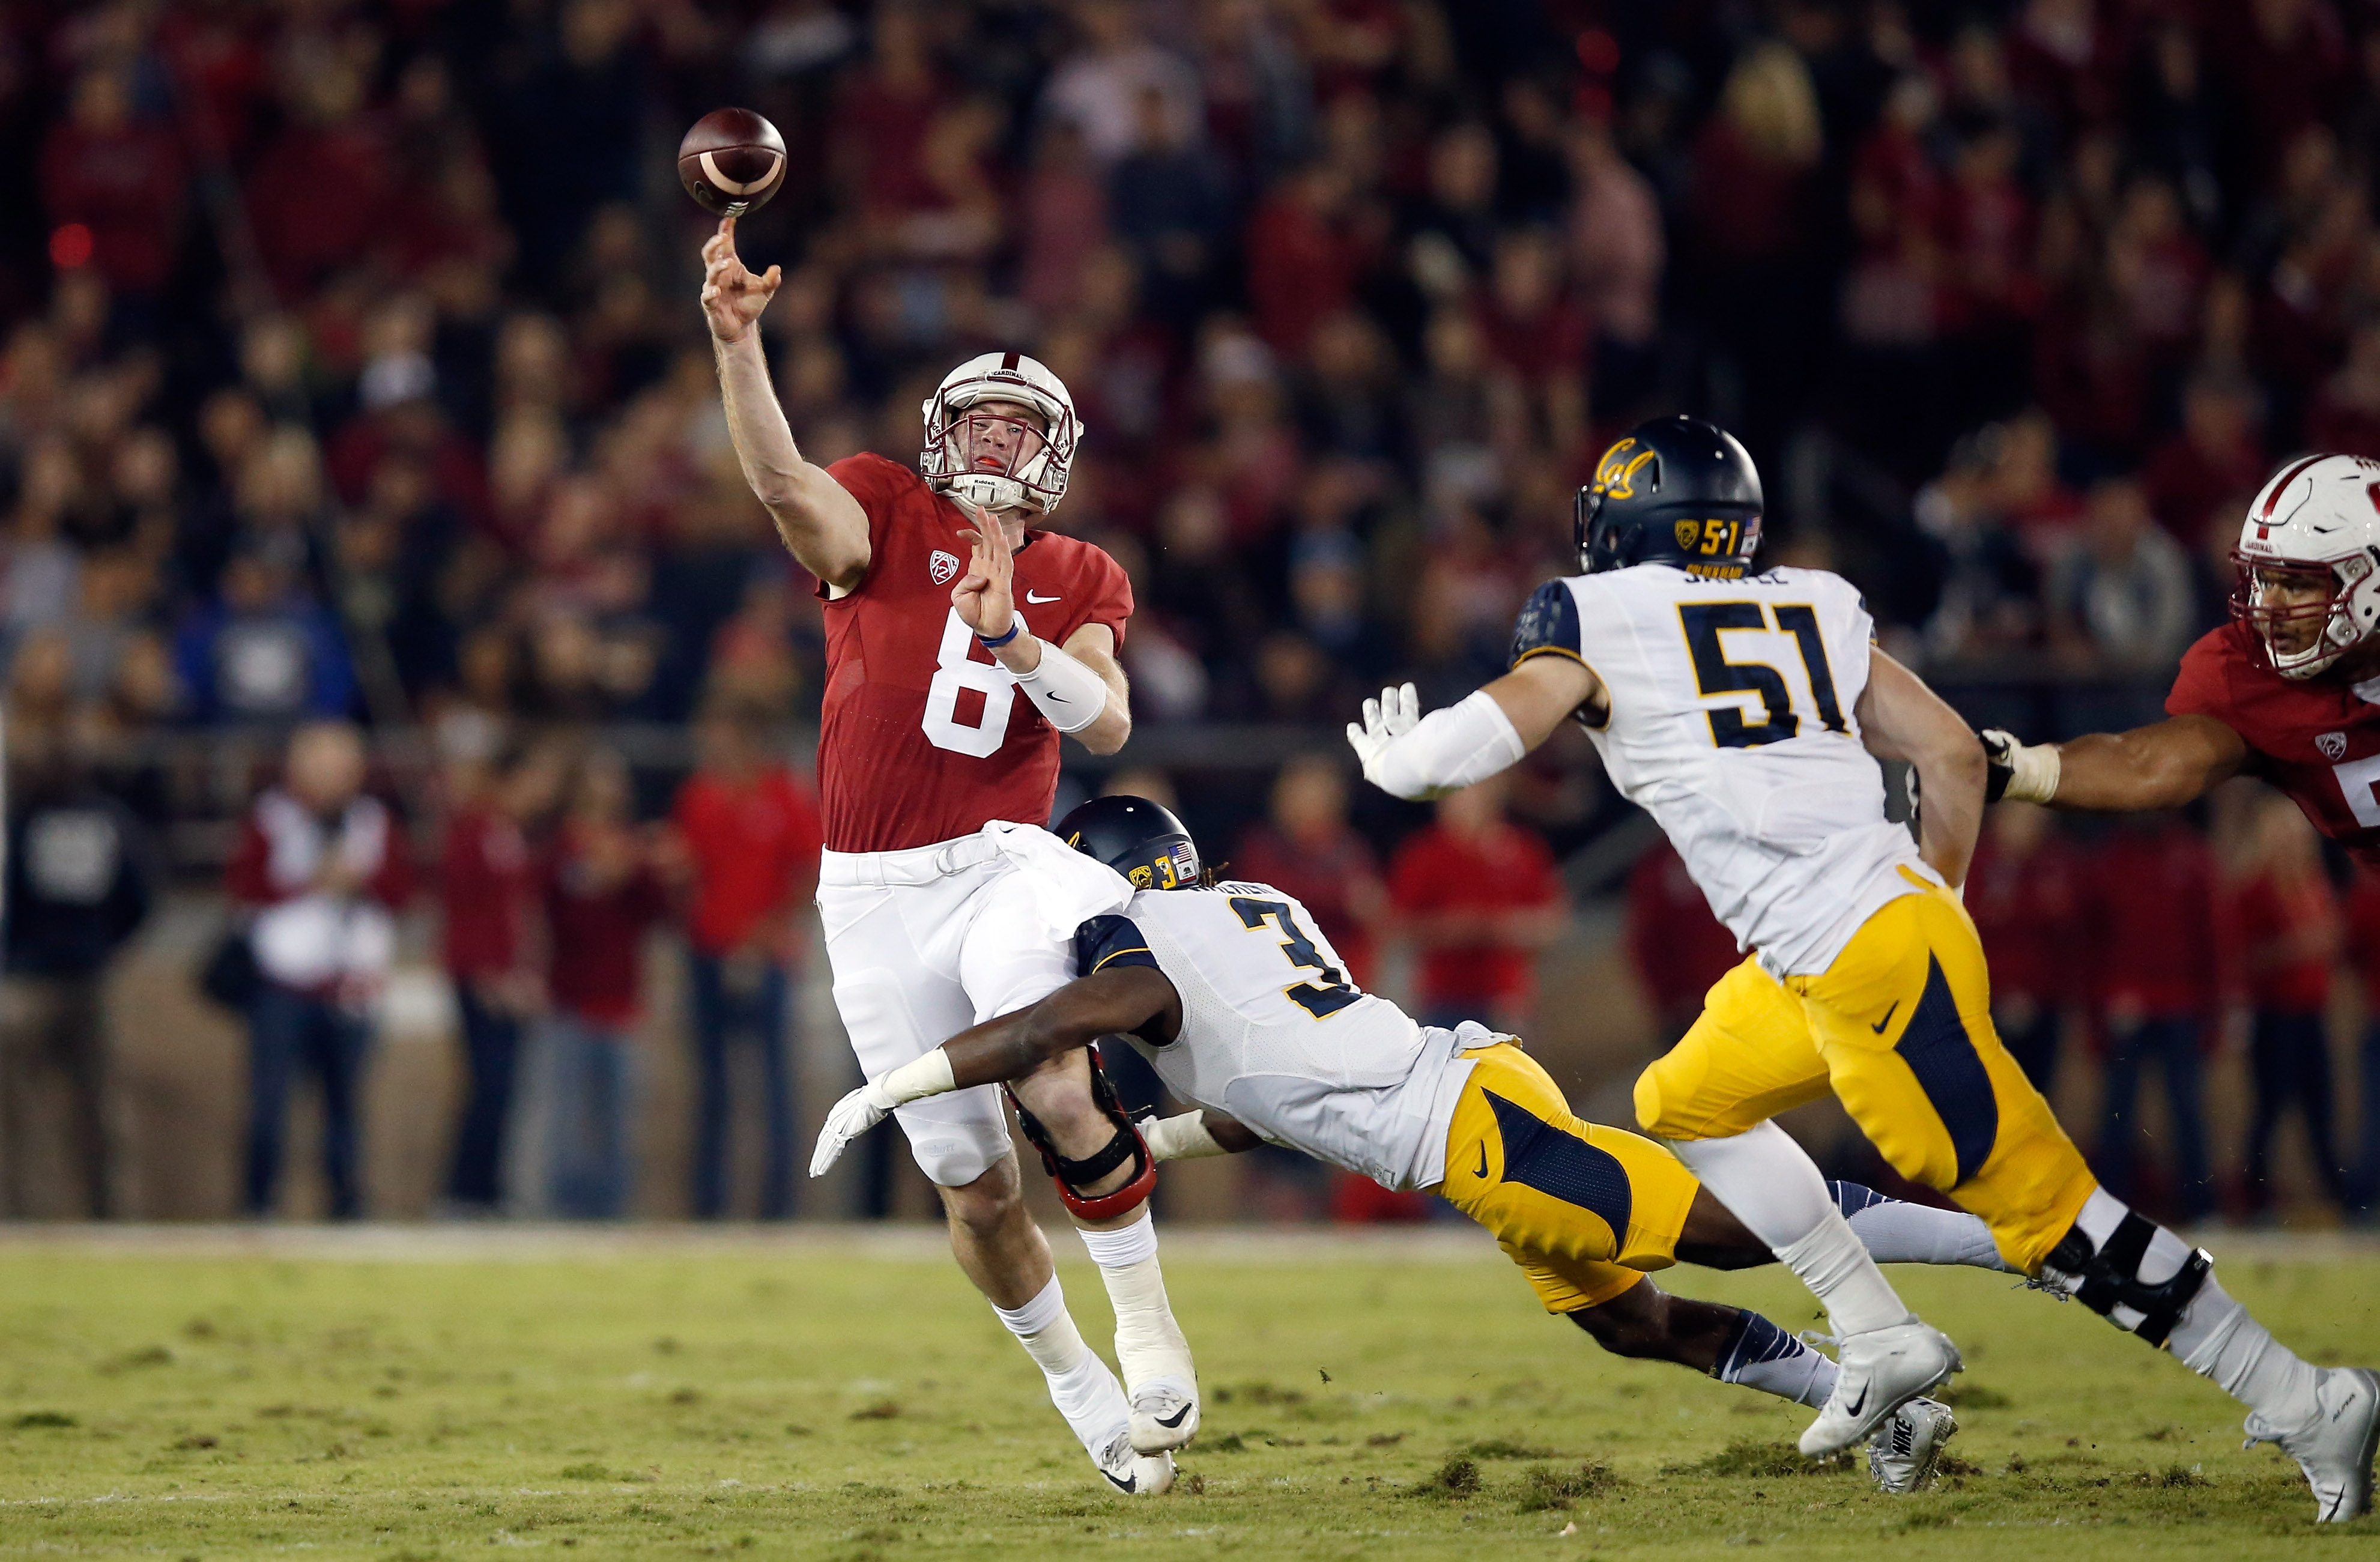 PALO ALTO, CA - NOVEMBER 21:  Kevin Hogan #8 of the Stanford Cardinal is hit by Cameron Walker #3 of the California Golden Bears as he throws the ball at Stanford Stadium on November 21, 2015 in Palo Alto, California.  (Photo by Ezra Shaw/Getty Images)